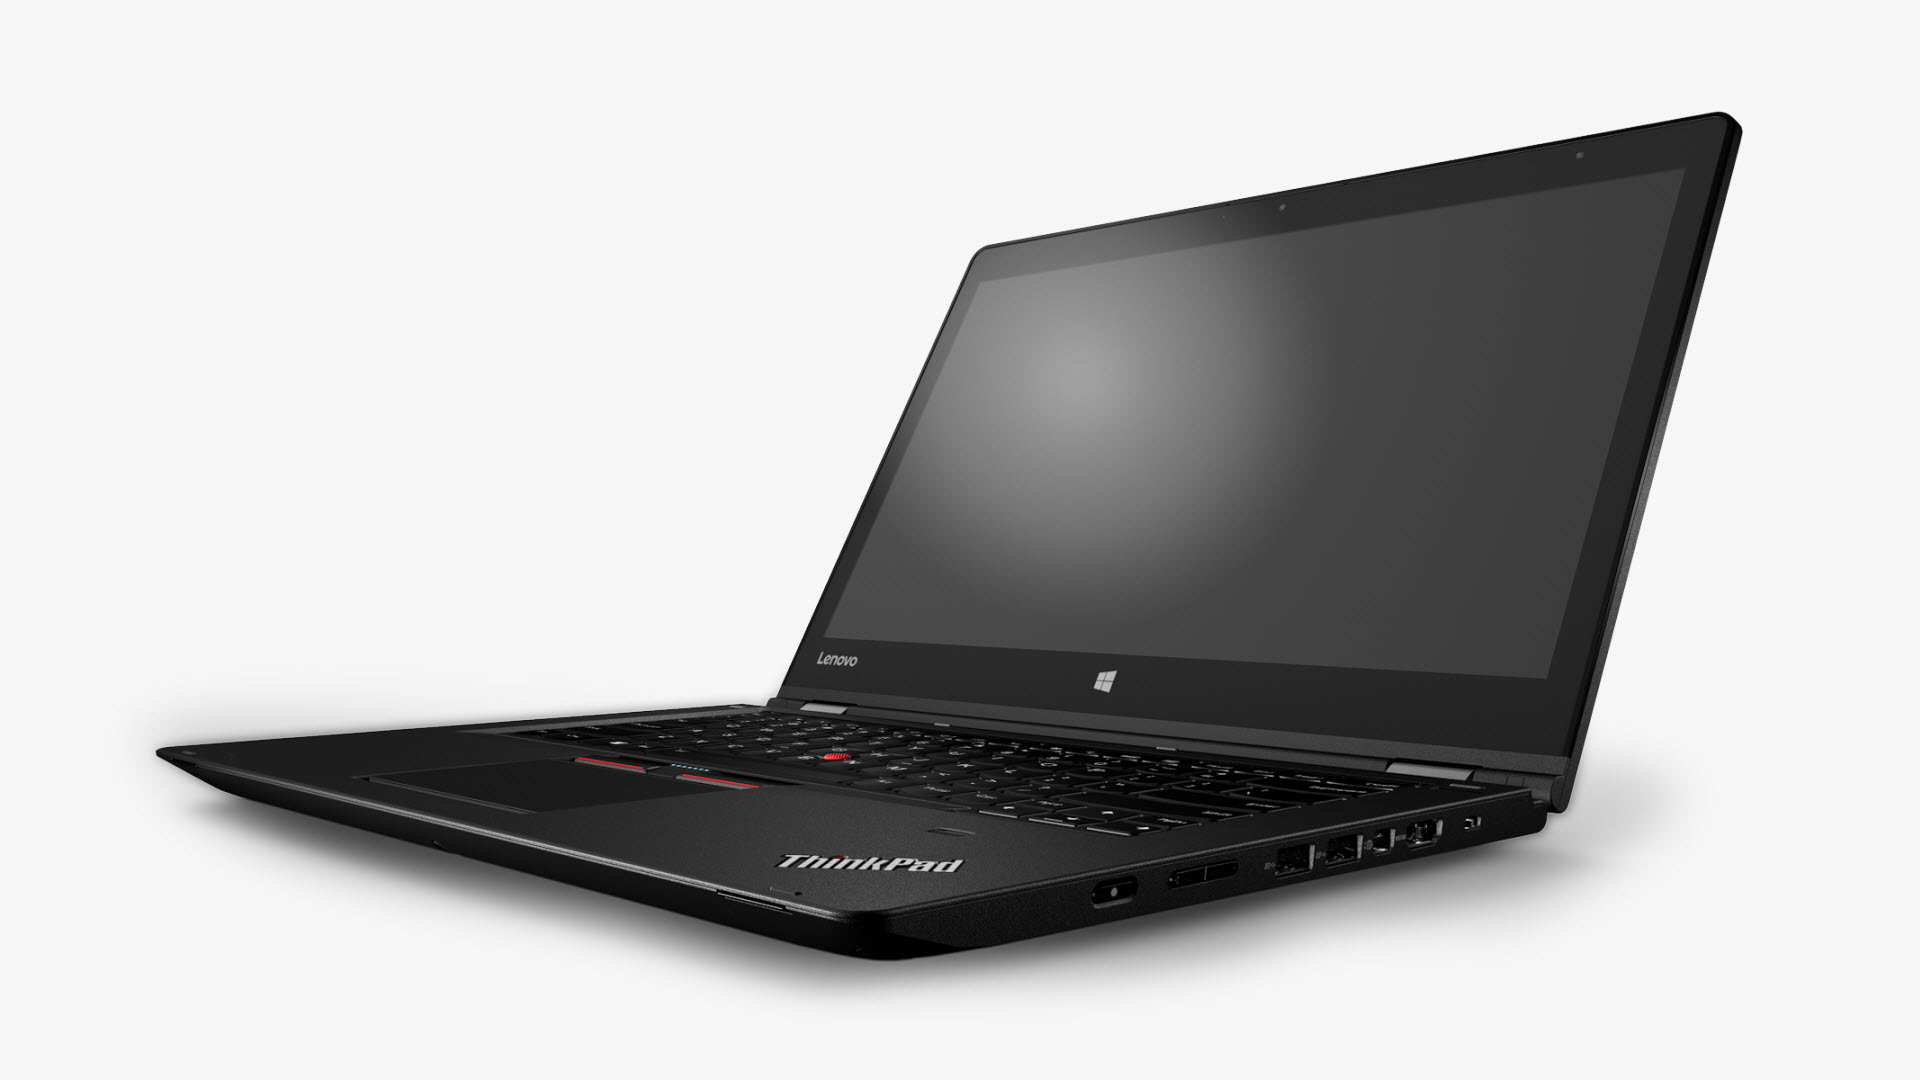 "ThinkPad P40 Yoga 14"" IPS Touch FHD/i7-6500U/256GB SSD/8GB/NVIDIA M500M/B/F/Win 10 Pro"